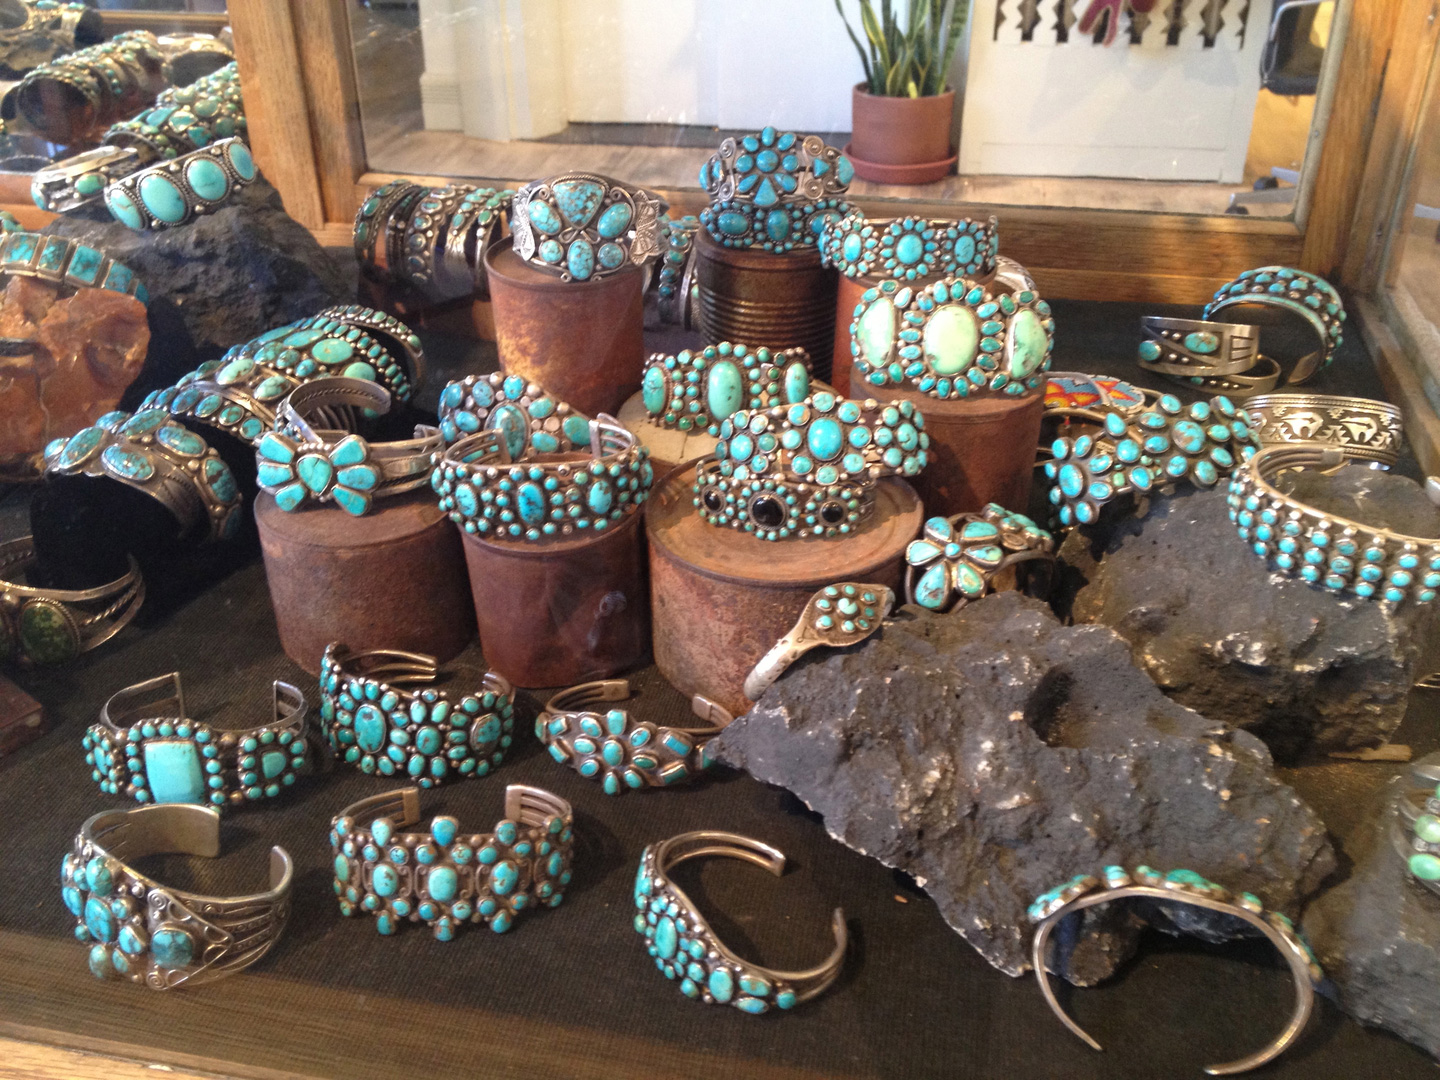 Old rusty cans and grey rocks to create a jewelry display setting for silver and turquoise stone jewelry pieces.